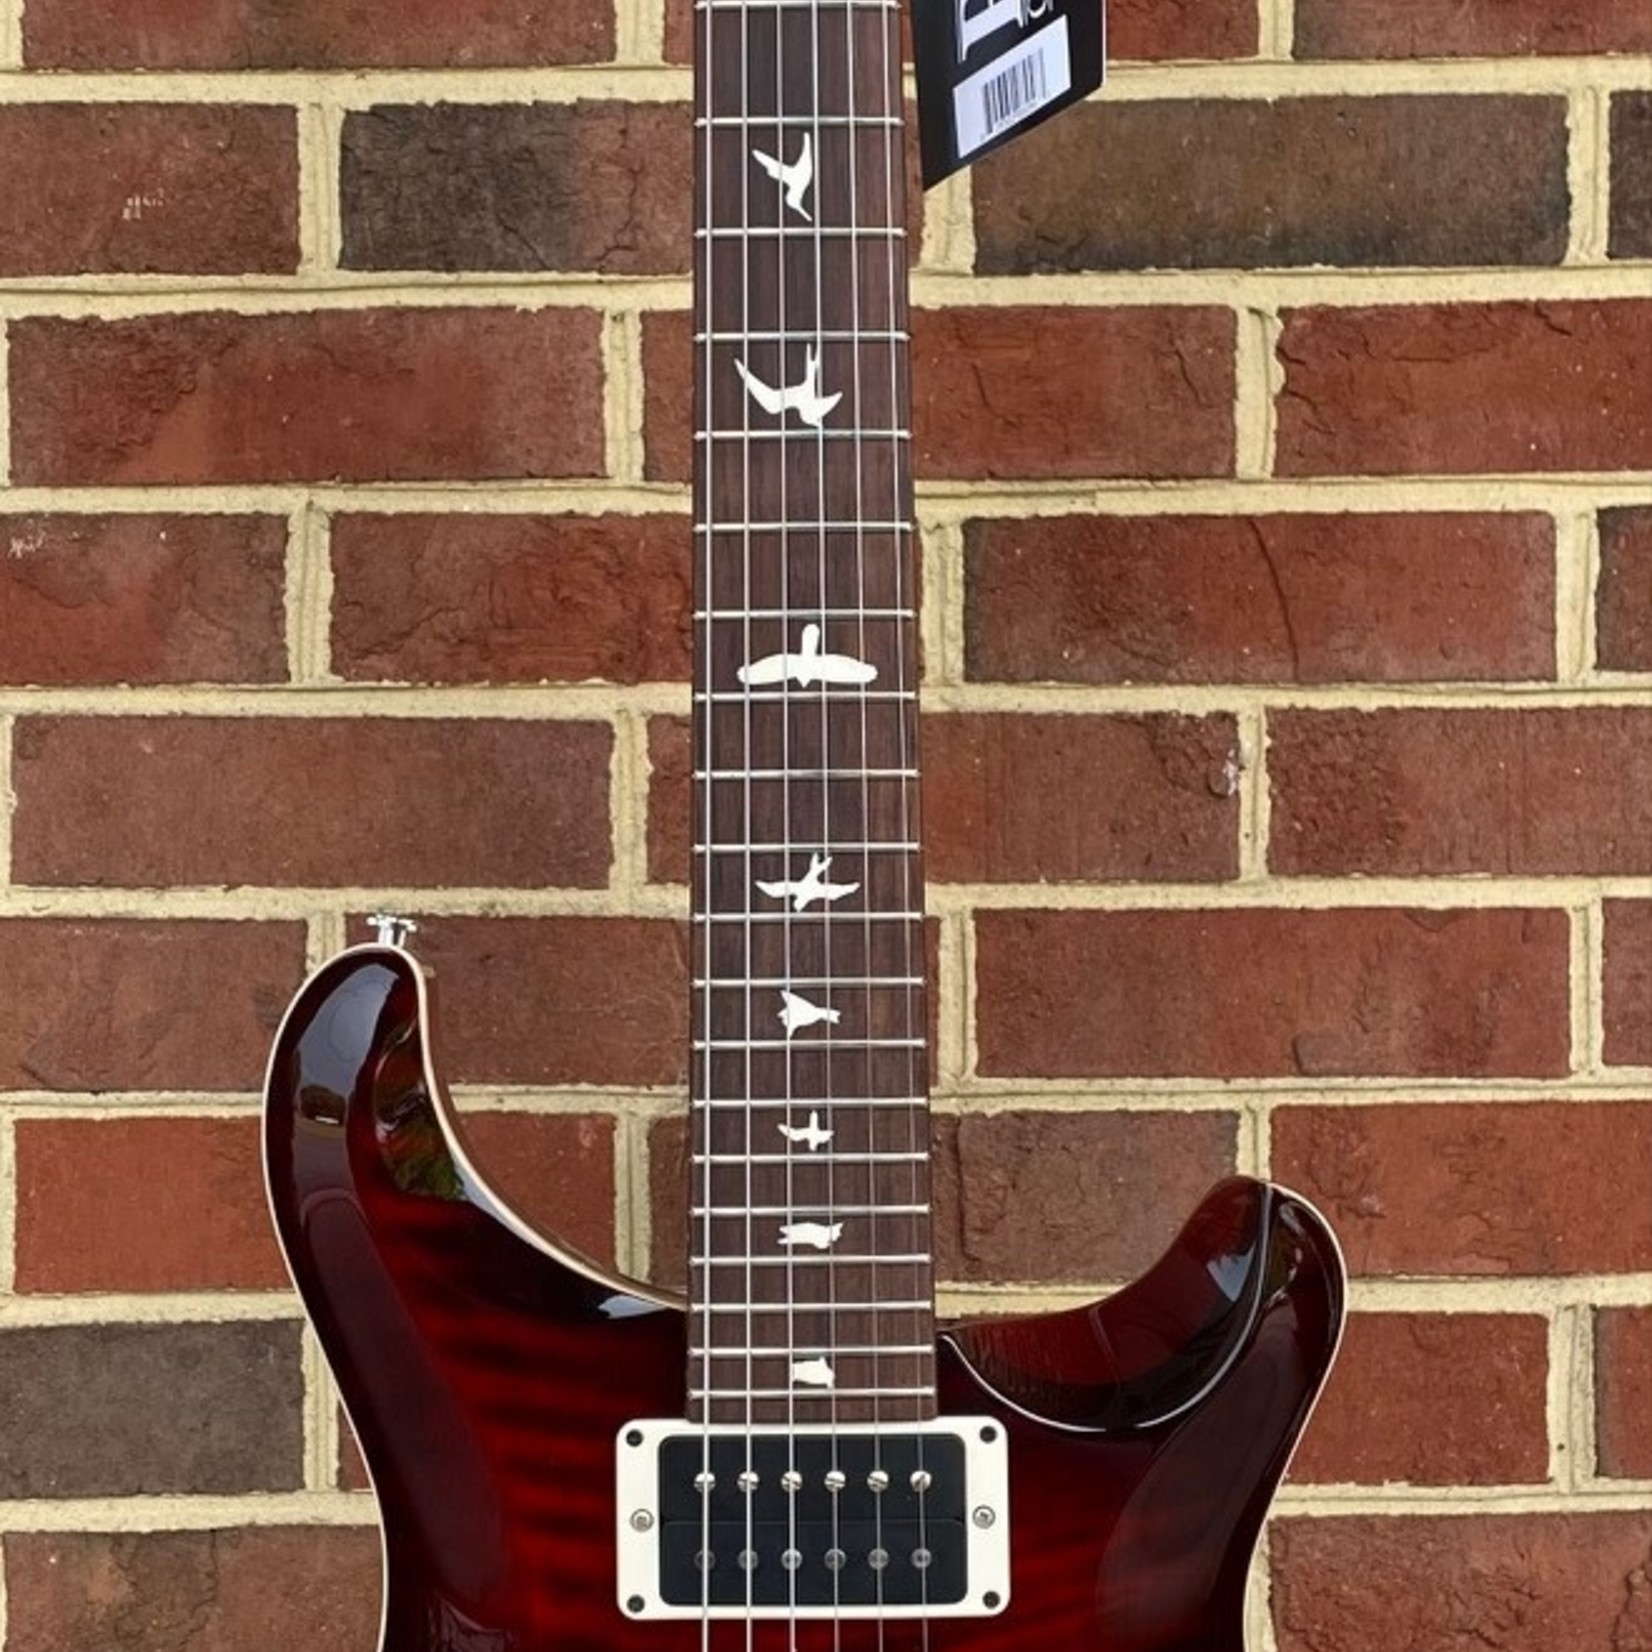 Paul Reed Smith Paul Reed Smith CE24, Fire Red Burst, 85/15 Pickups, Gig Bag